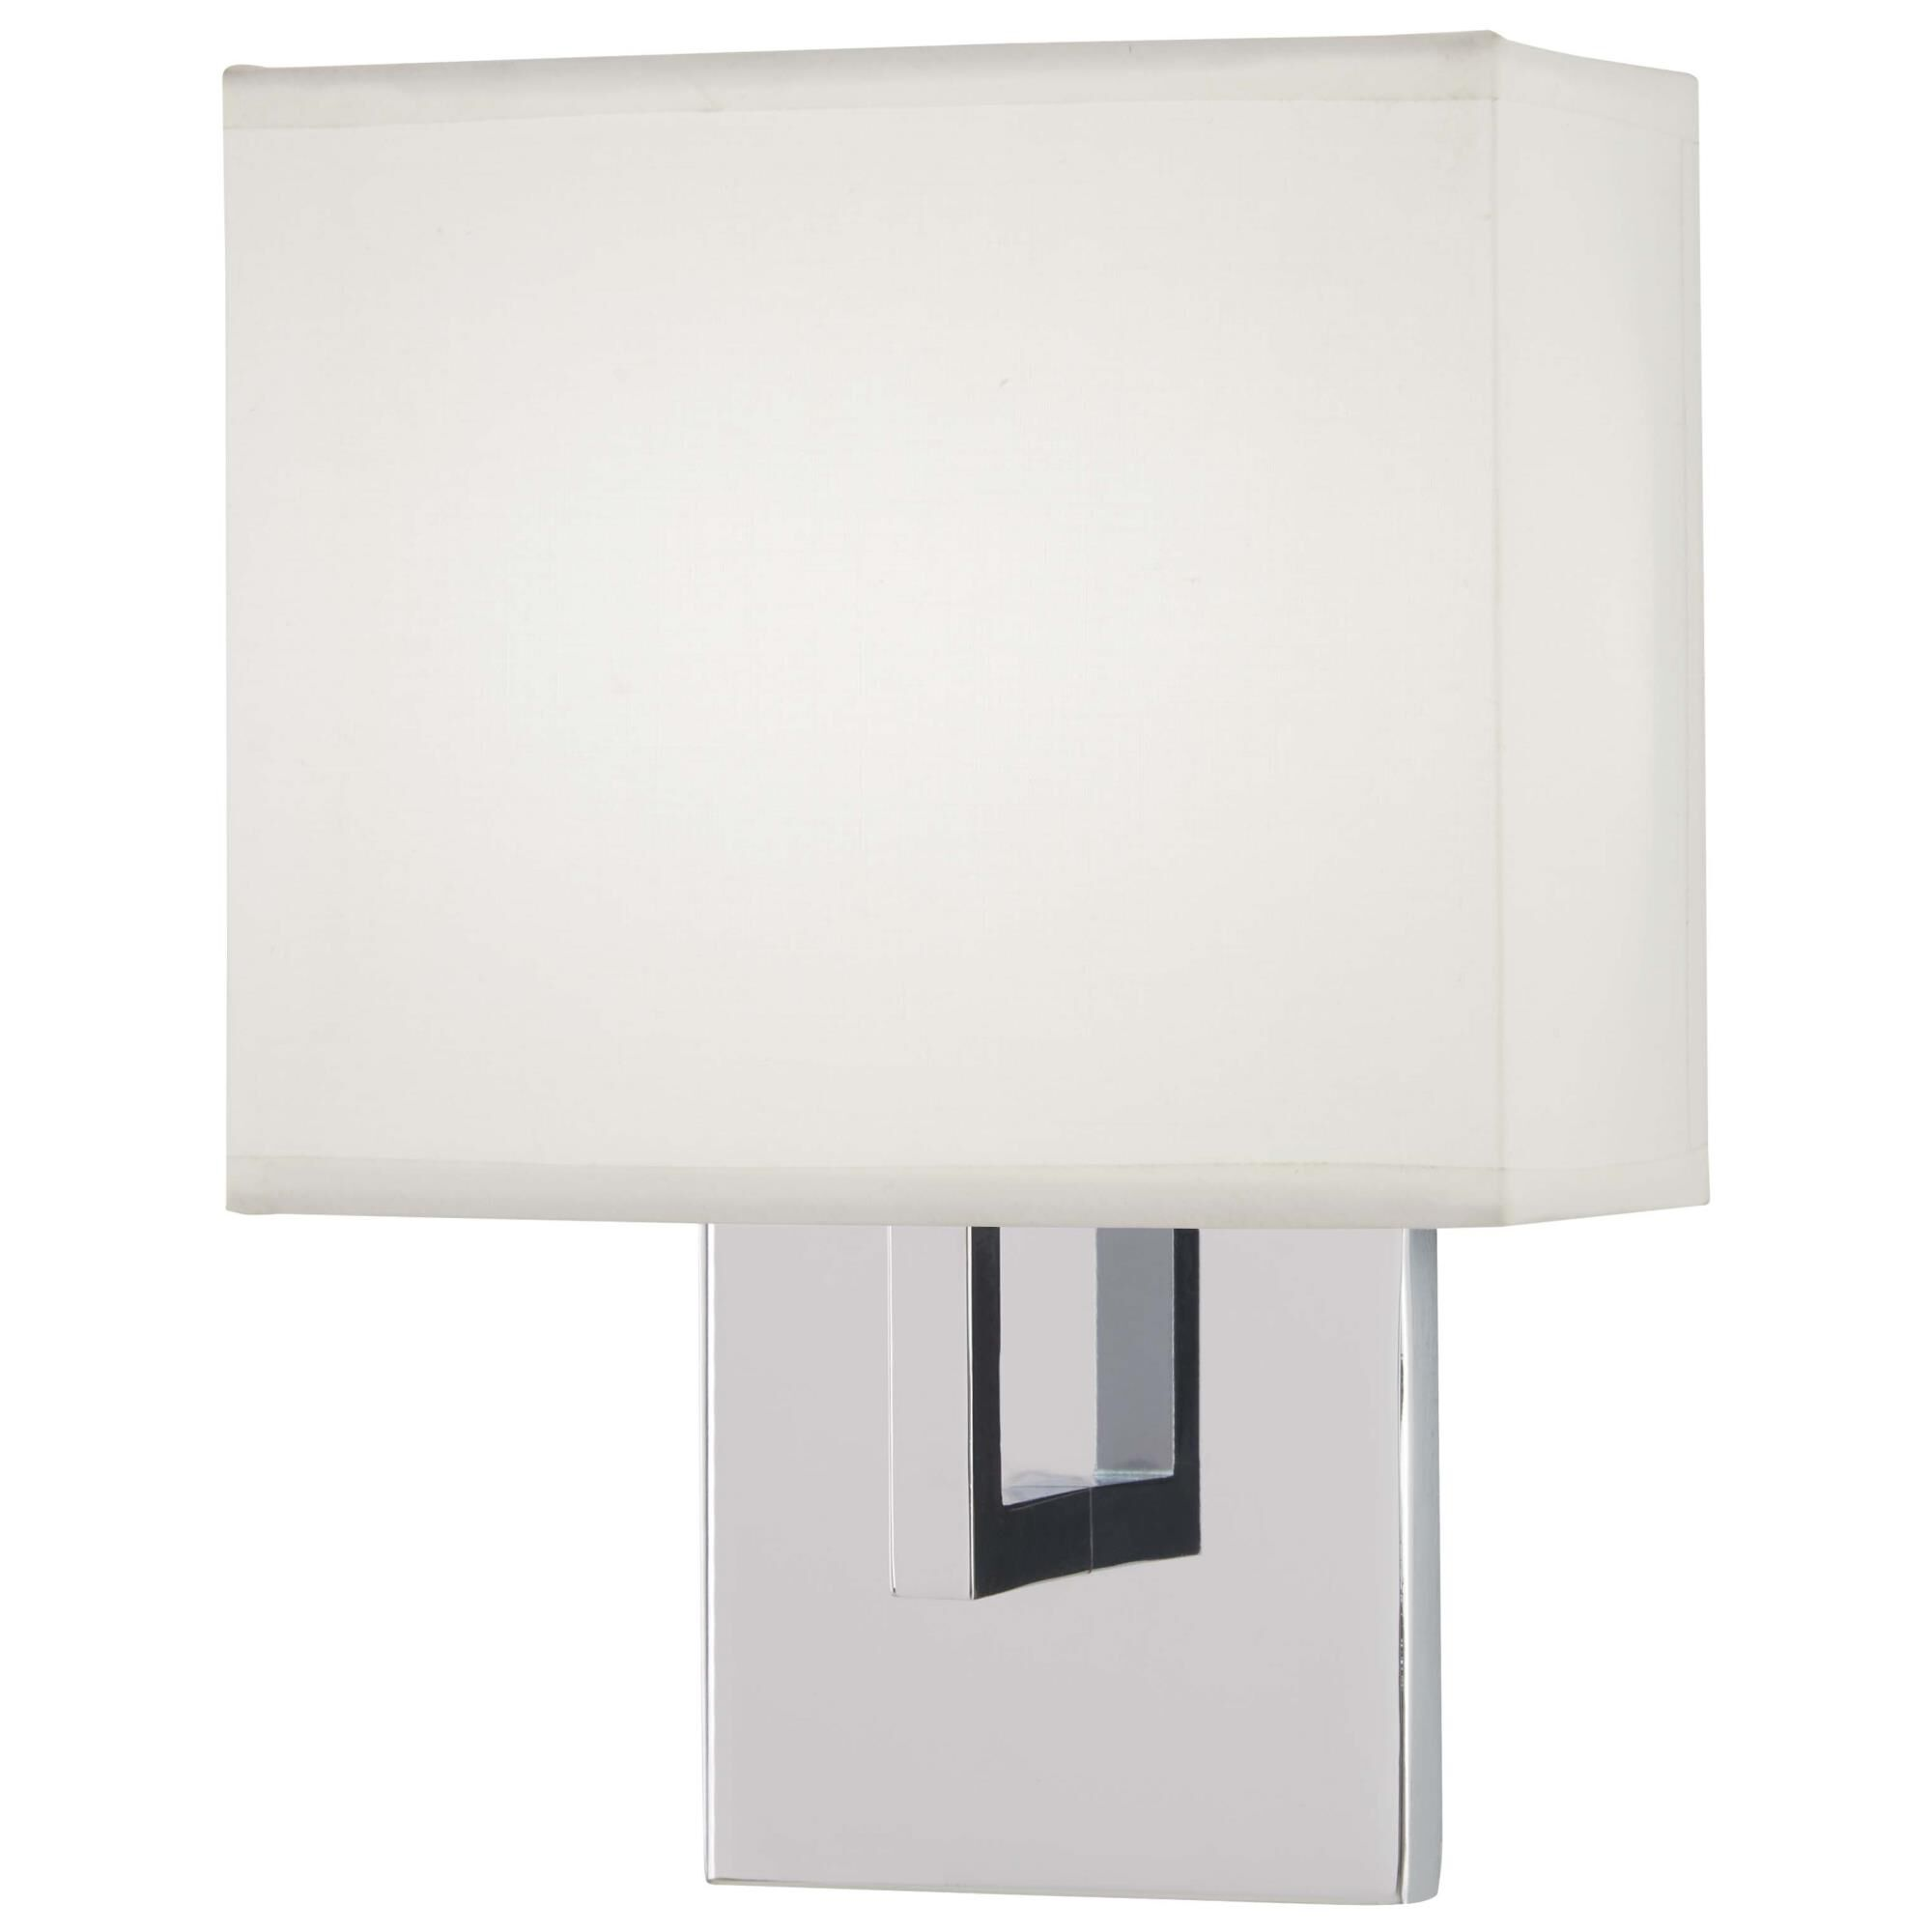 Kovacs 11 Inch Wall Sconce - P470-077-l - Transitional